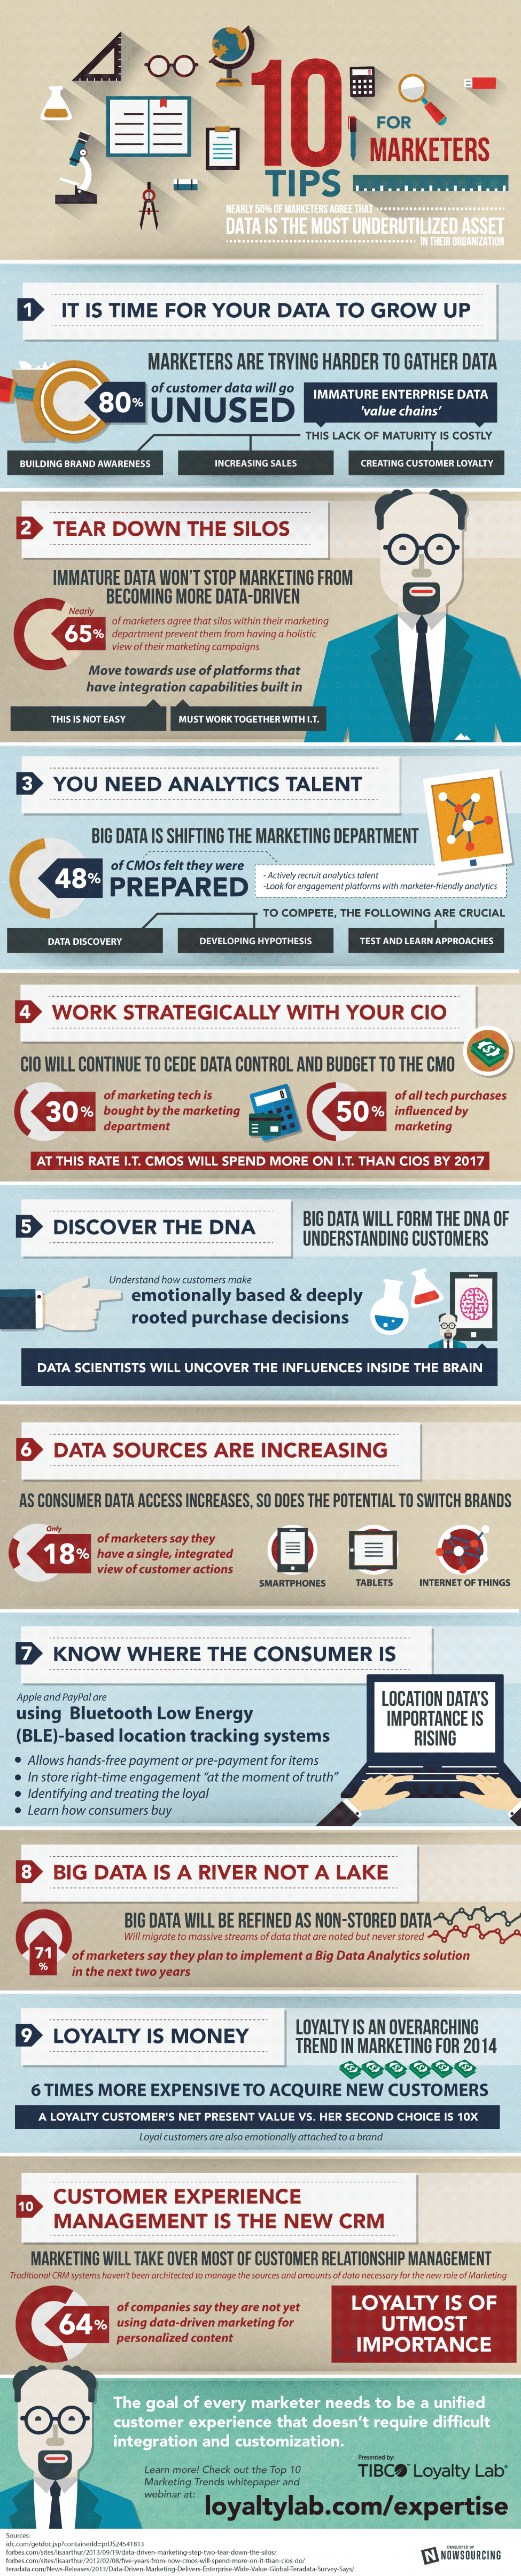 Top 10 Marketing Trends for 2014 Infographic